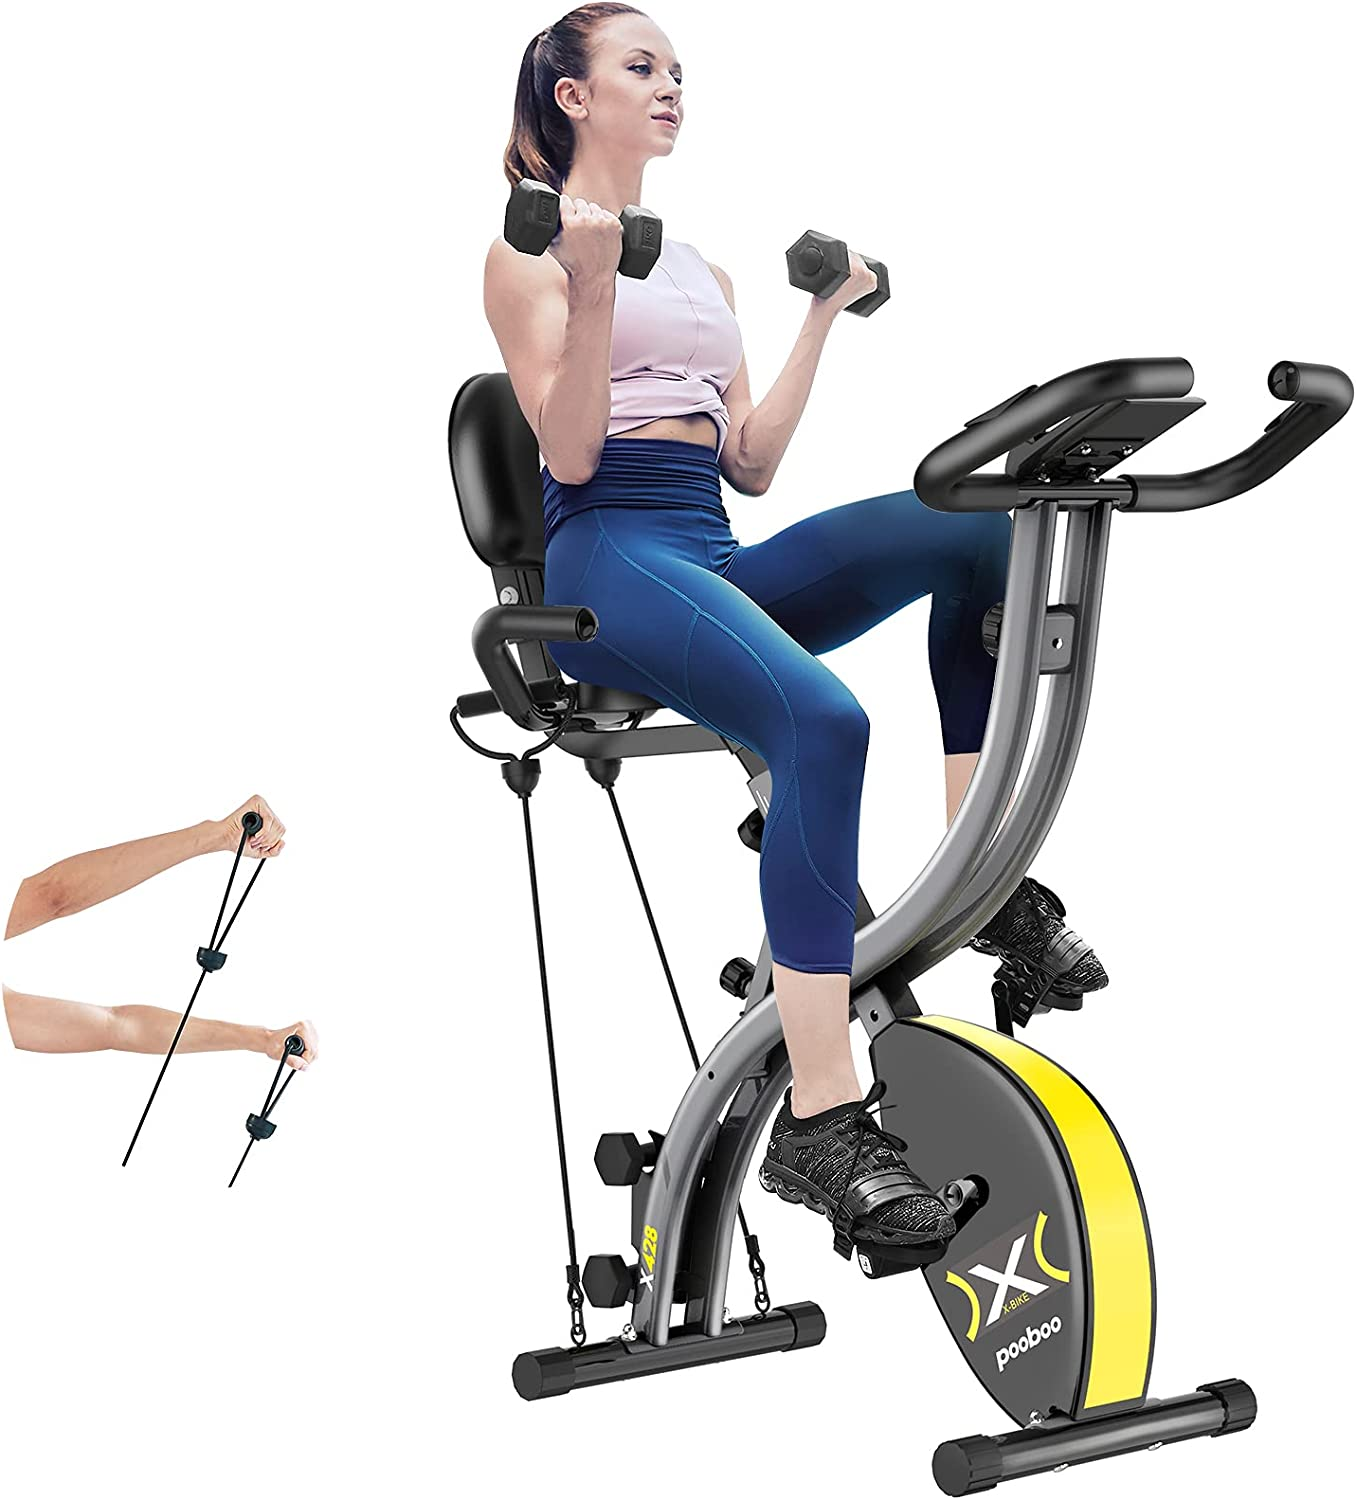 pooboo Folding Magnetic Exercise Fold Jacksonville ! Super beauty product restock quality top! Mall Resistance Adjustable Bike